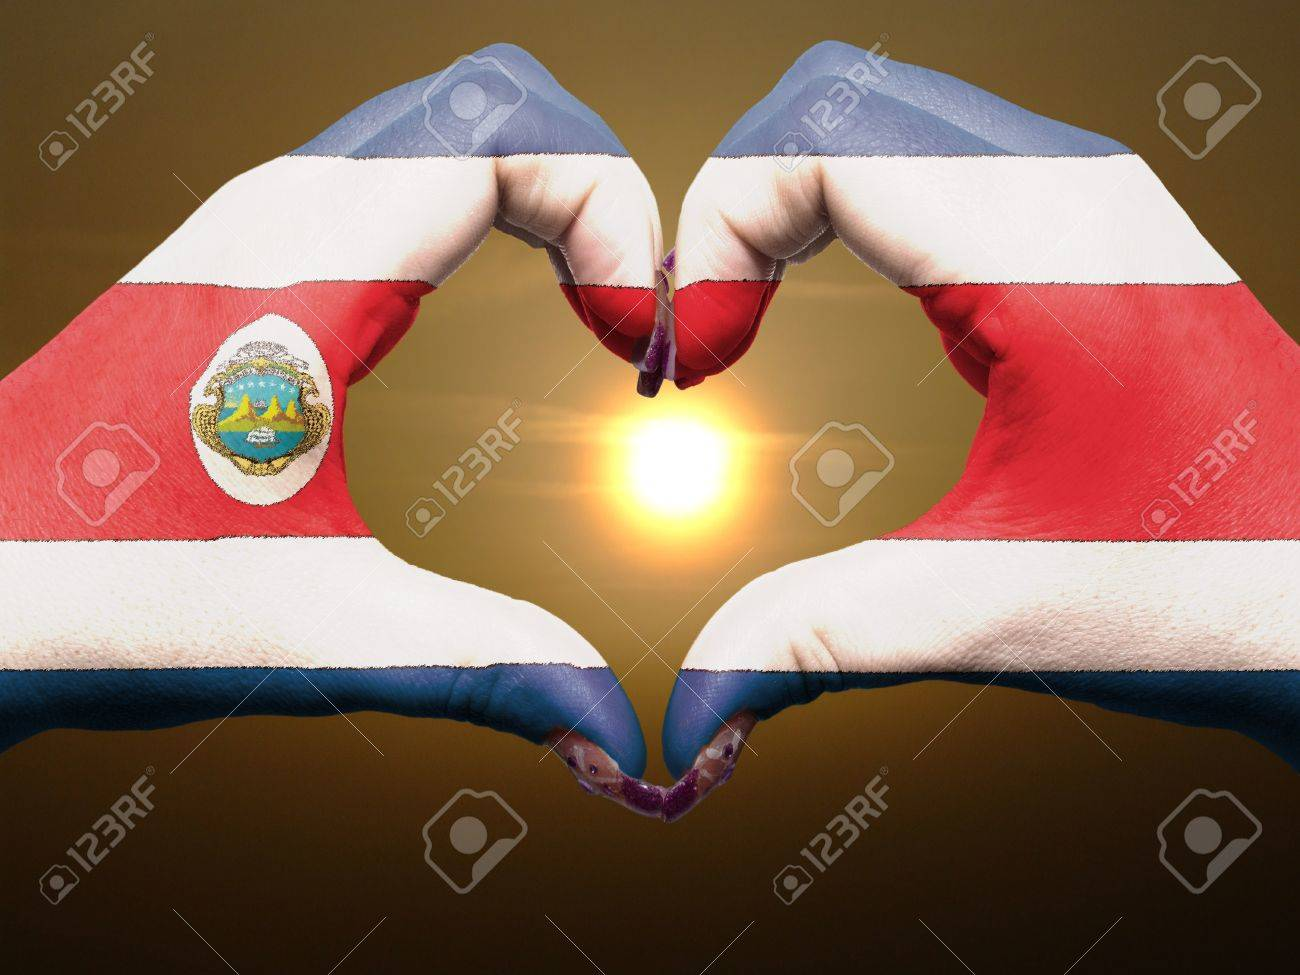 costa rican flag stock photos u0026 pictures royalty free costa rican